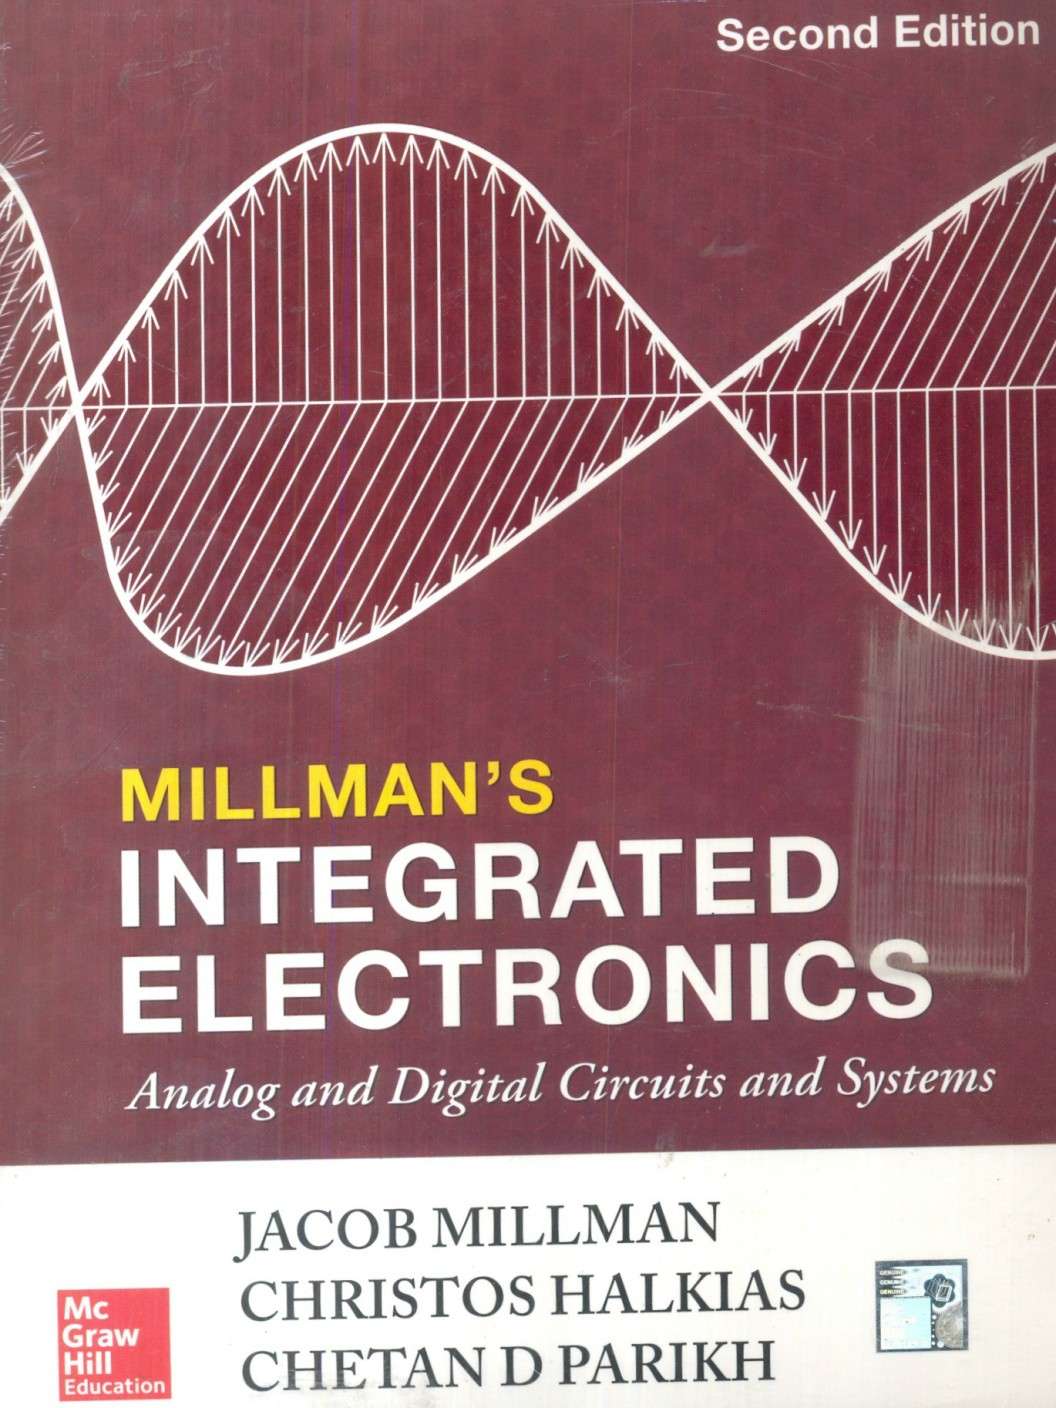 Electrical Guru Best Book For Analog Electronics Digital Circuit Simulator Circuits About Electronic And Technology Enriched With New Up To Date Topical Coverage Enhanced Pedagogy Including Simulation Problems